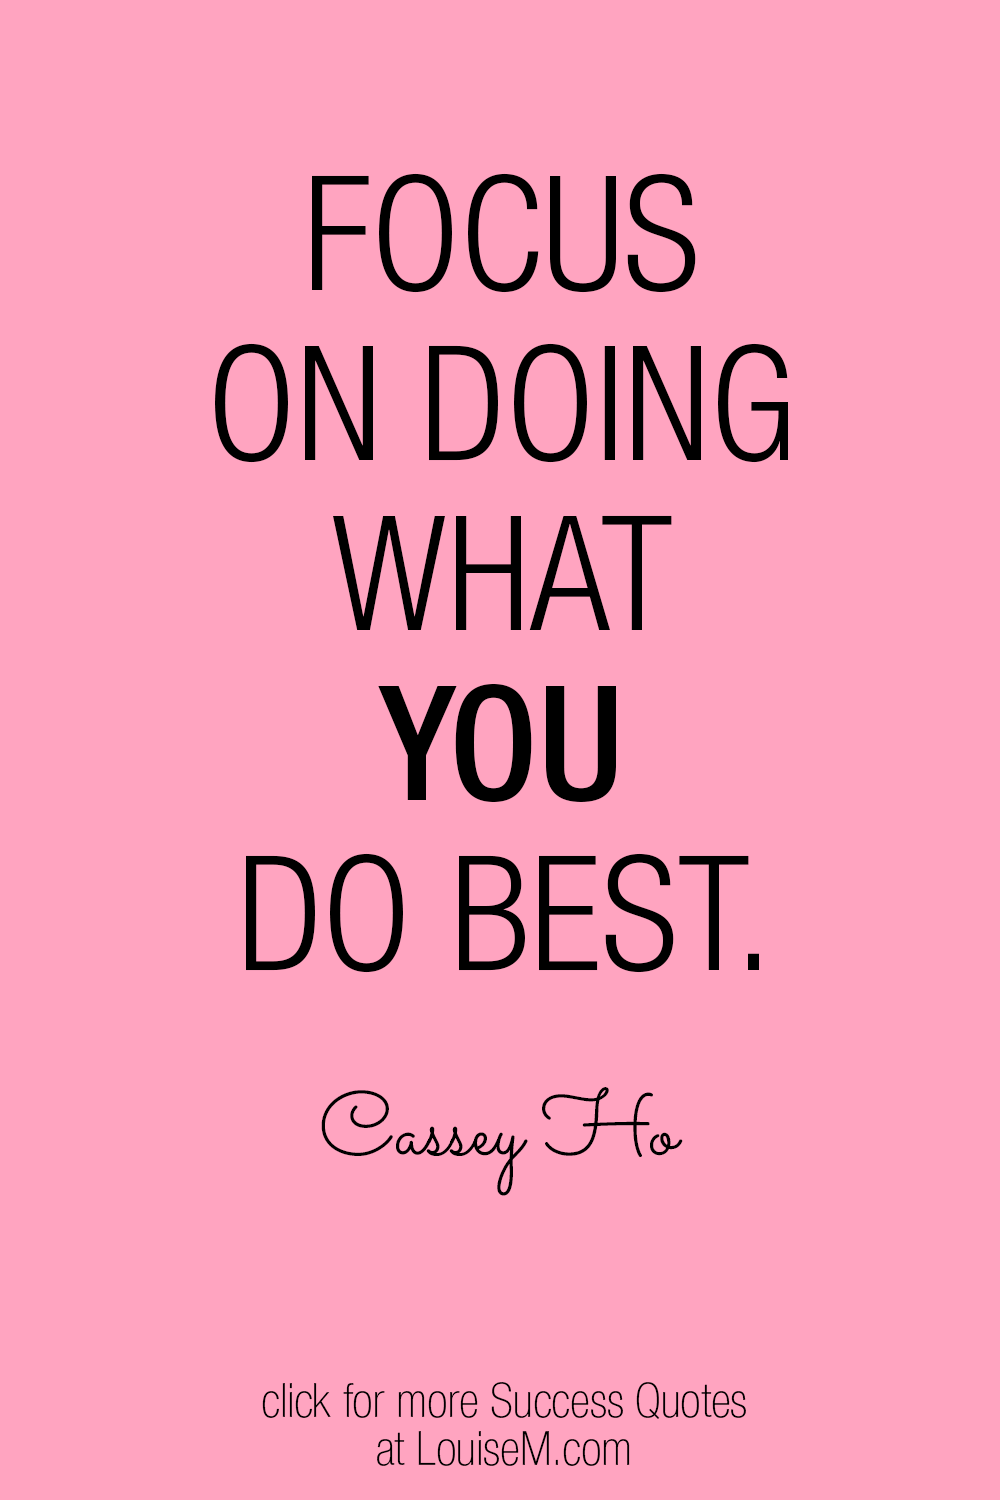 Focus on doing what you do best quote graphic